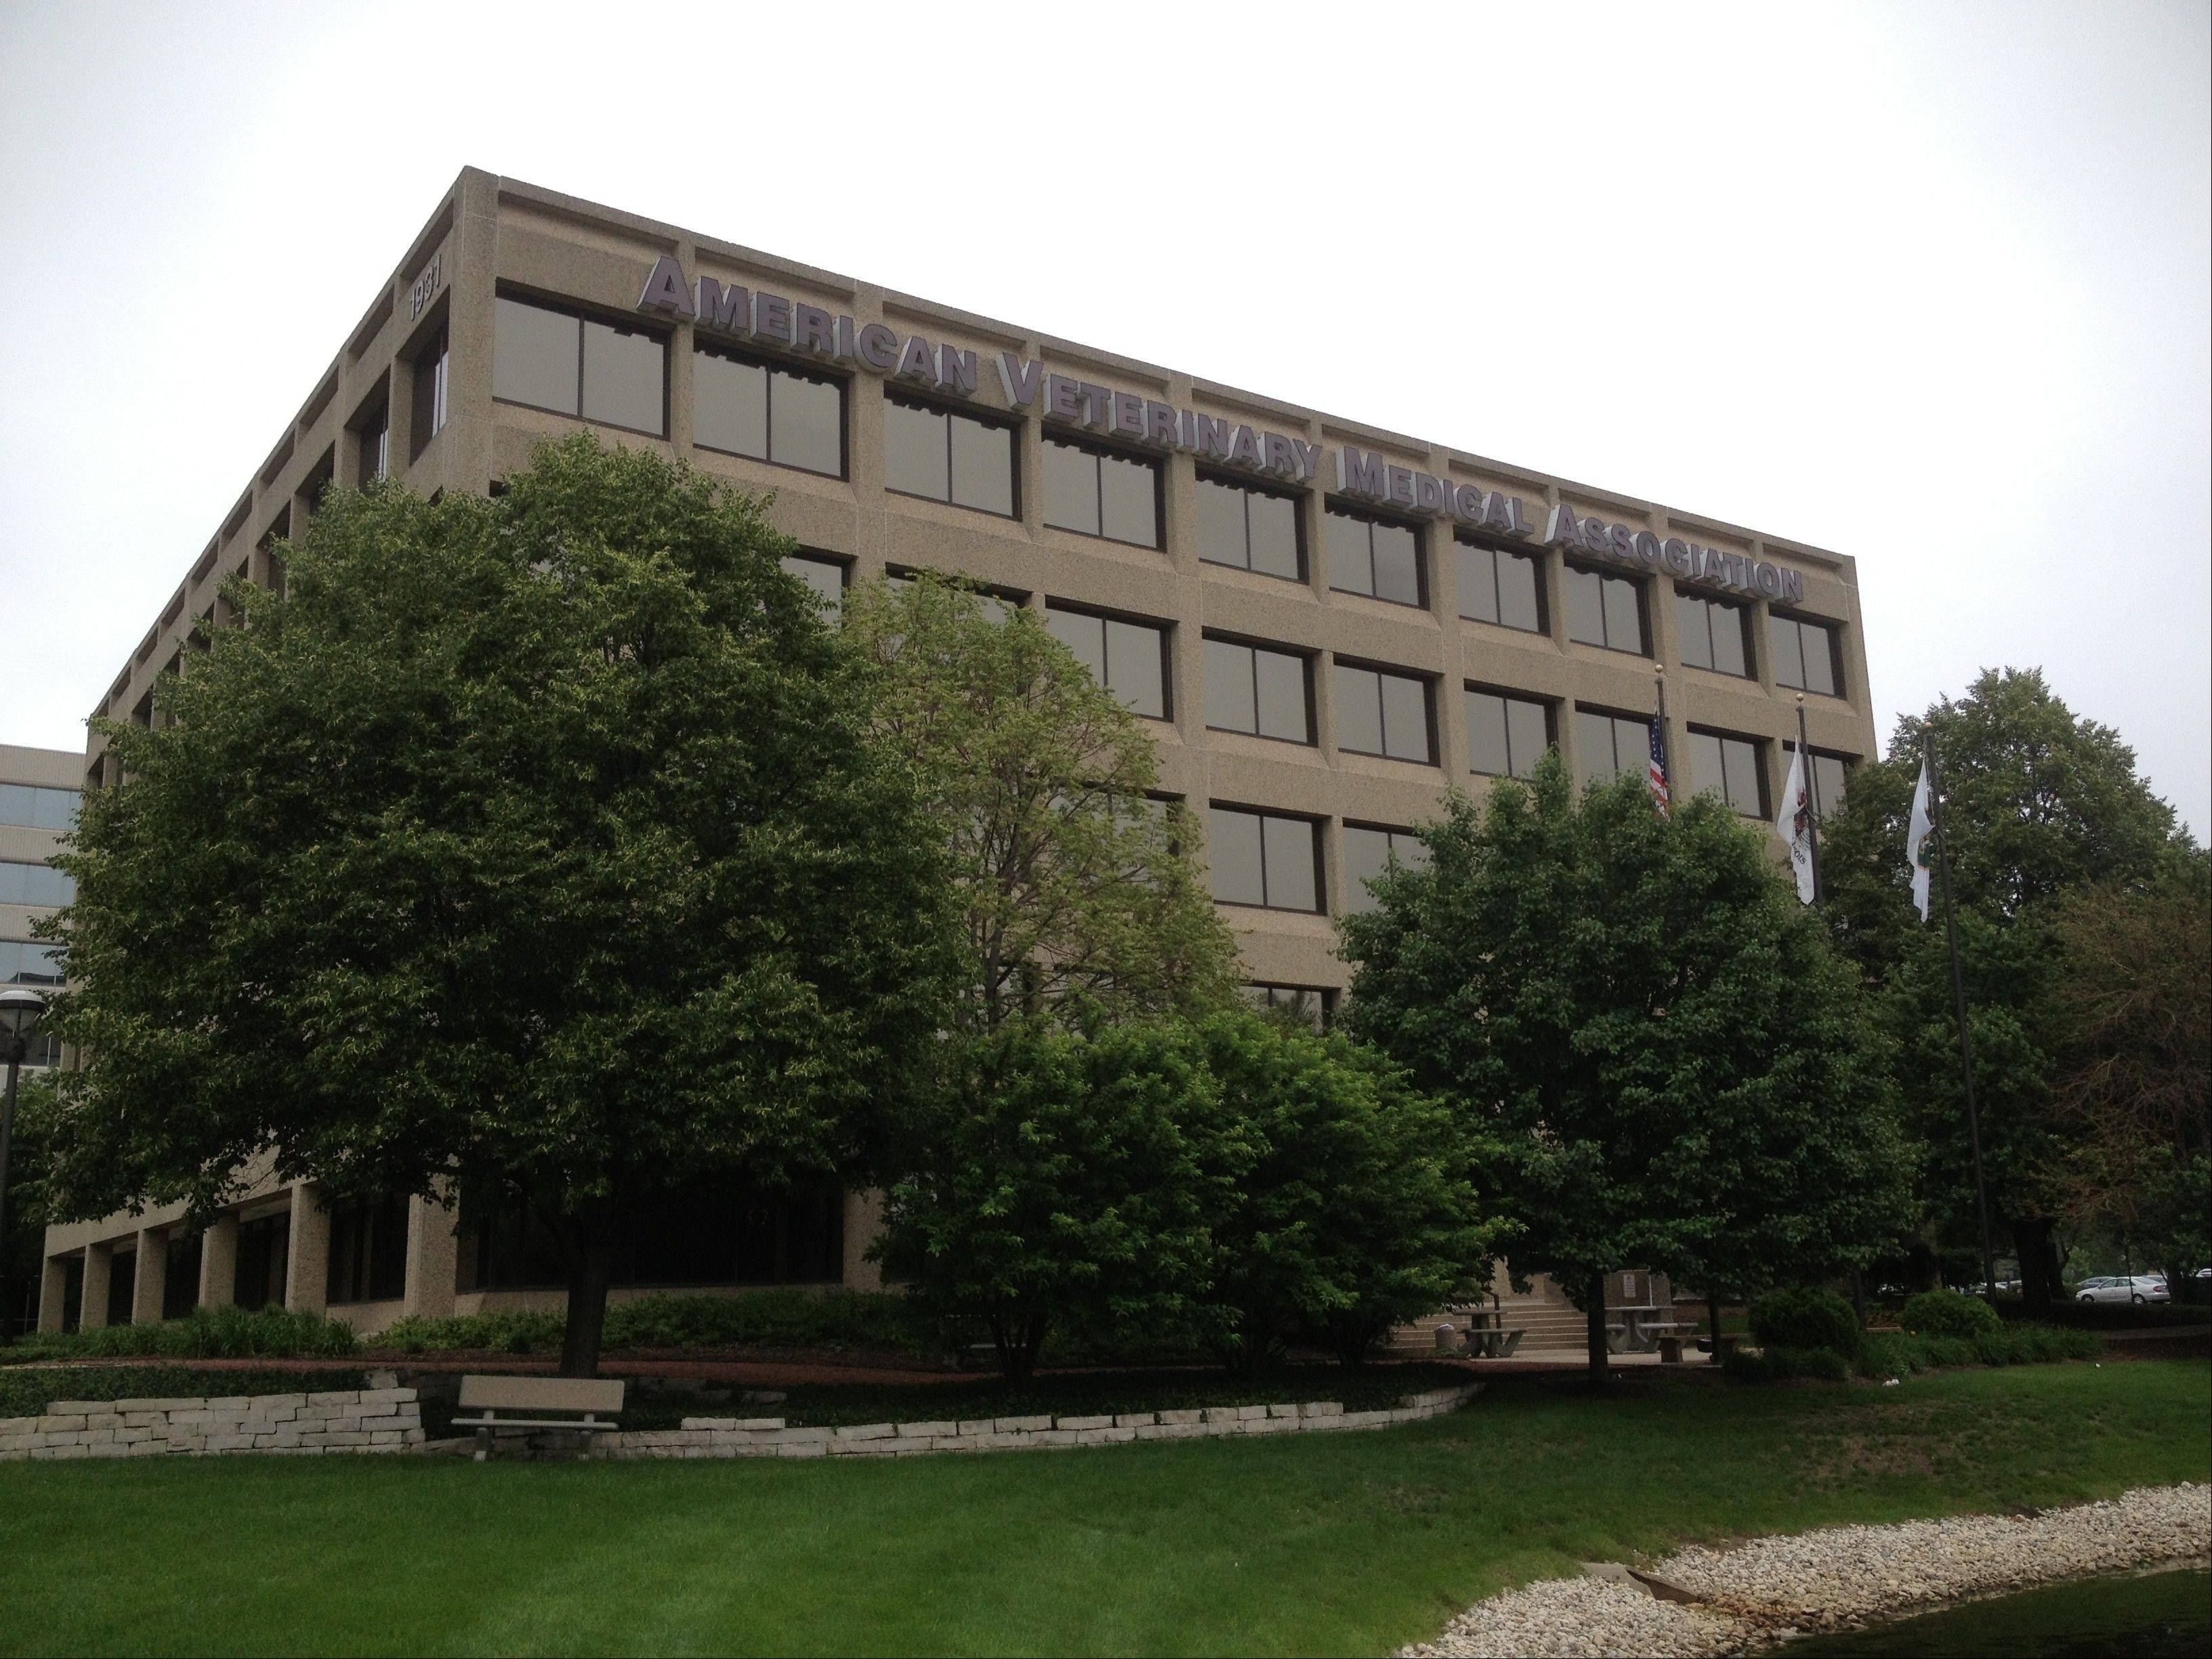 The American Veterinary Medical Association has been based in Schaumburg for 38 of its 150-year existence. This building at 1931 N. Meacham Road has been the group�s headquarters since 1991.